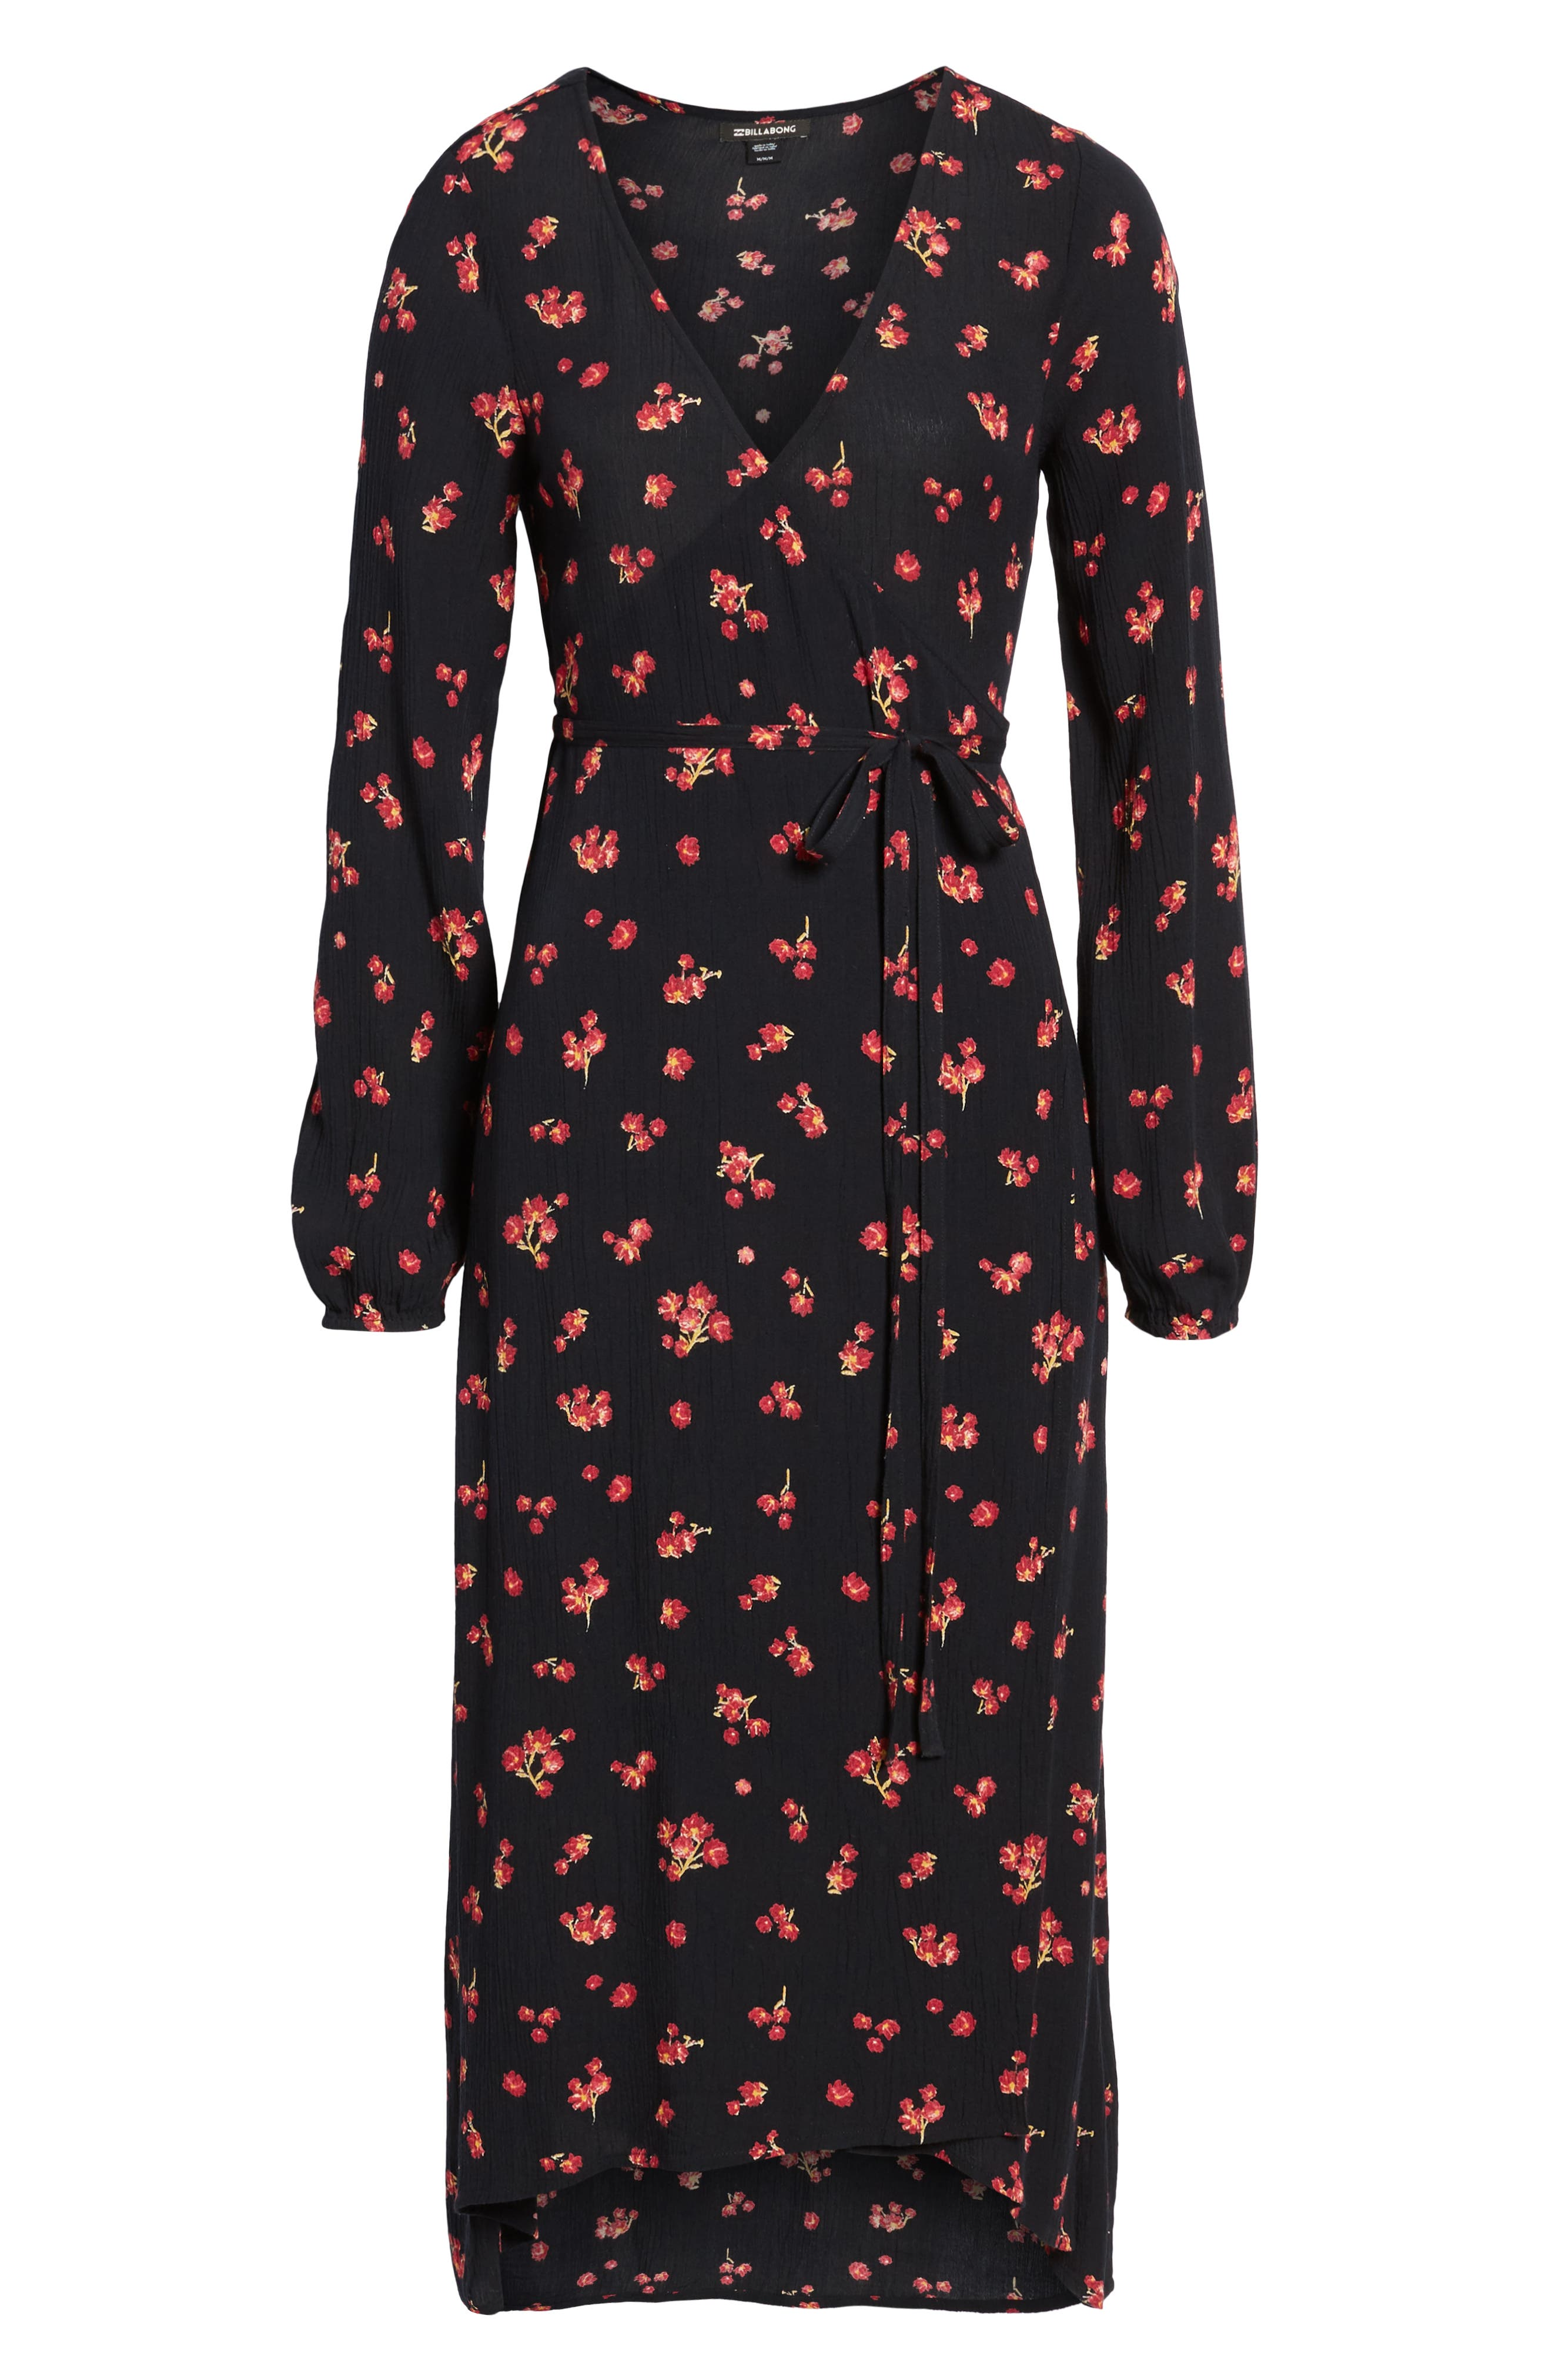 Forever Wild Floral Print Wrap Dress,                             Alternate thumbnail 6, color,                             001